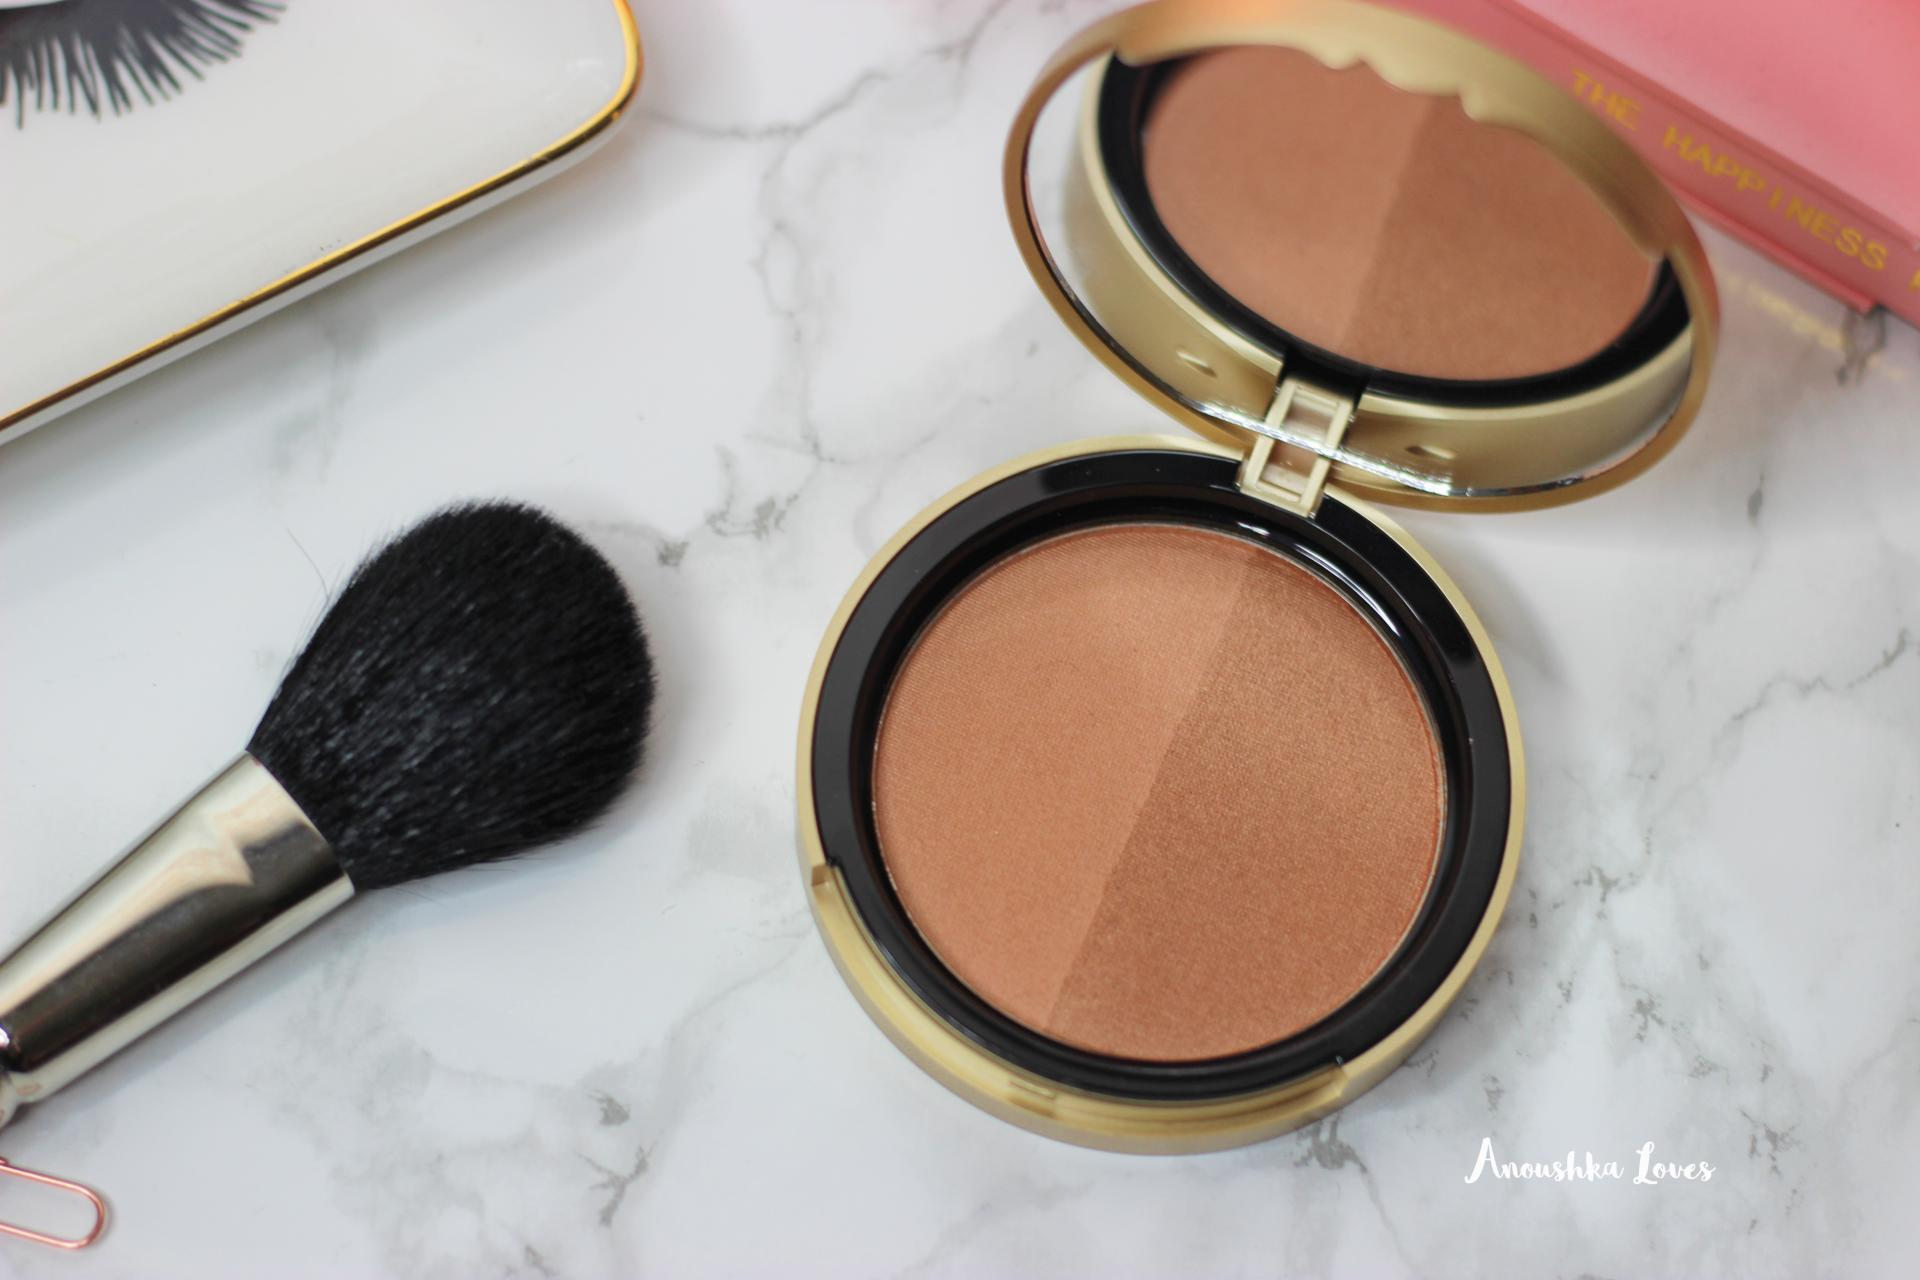 Too Faced Sun Bunny Bronzer gold packaging inside product